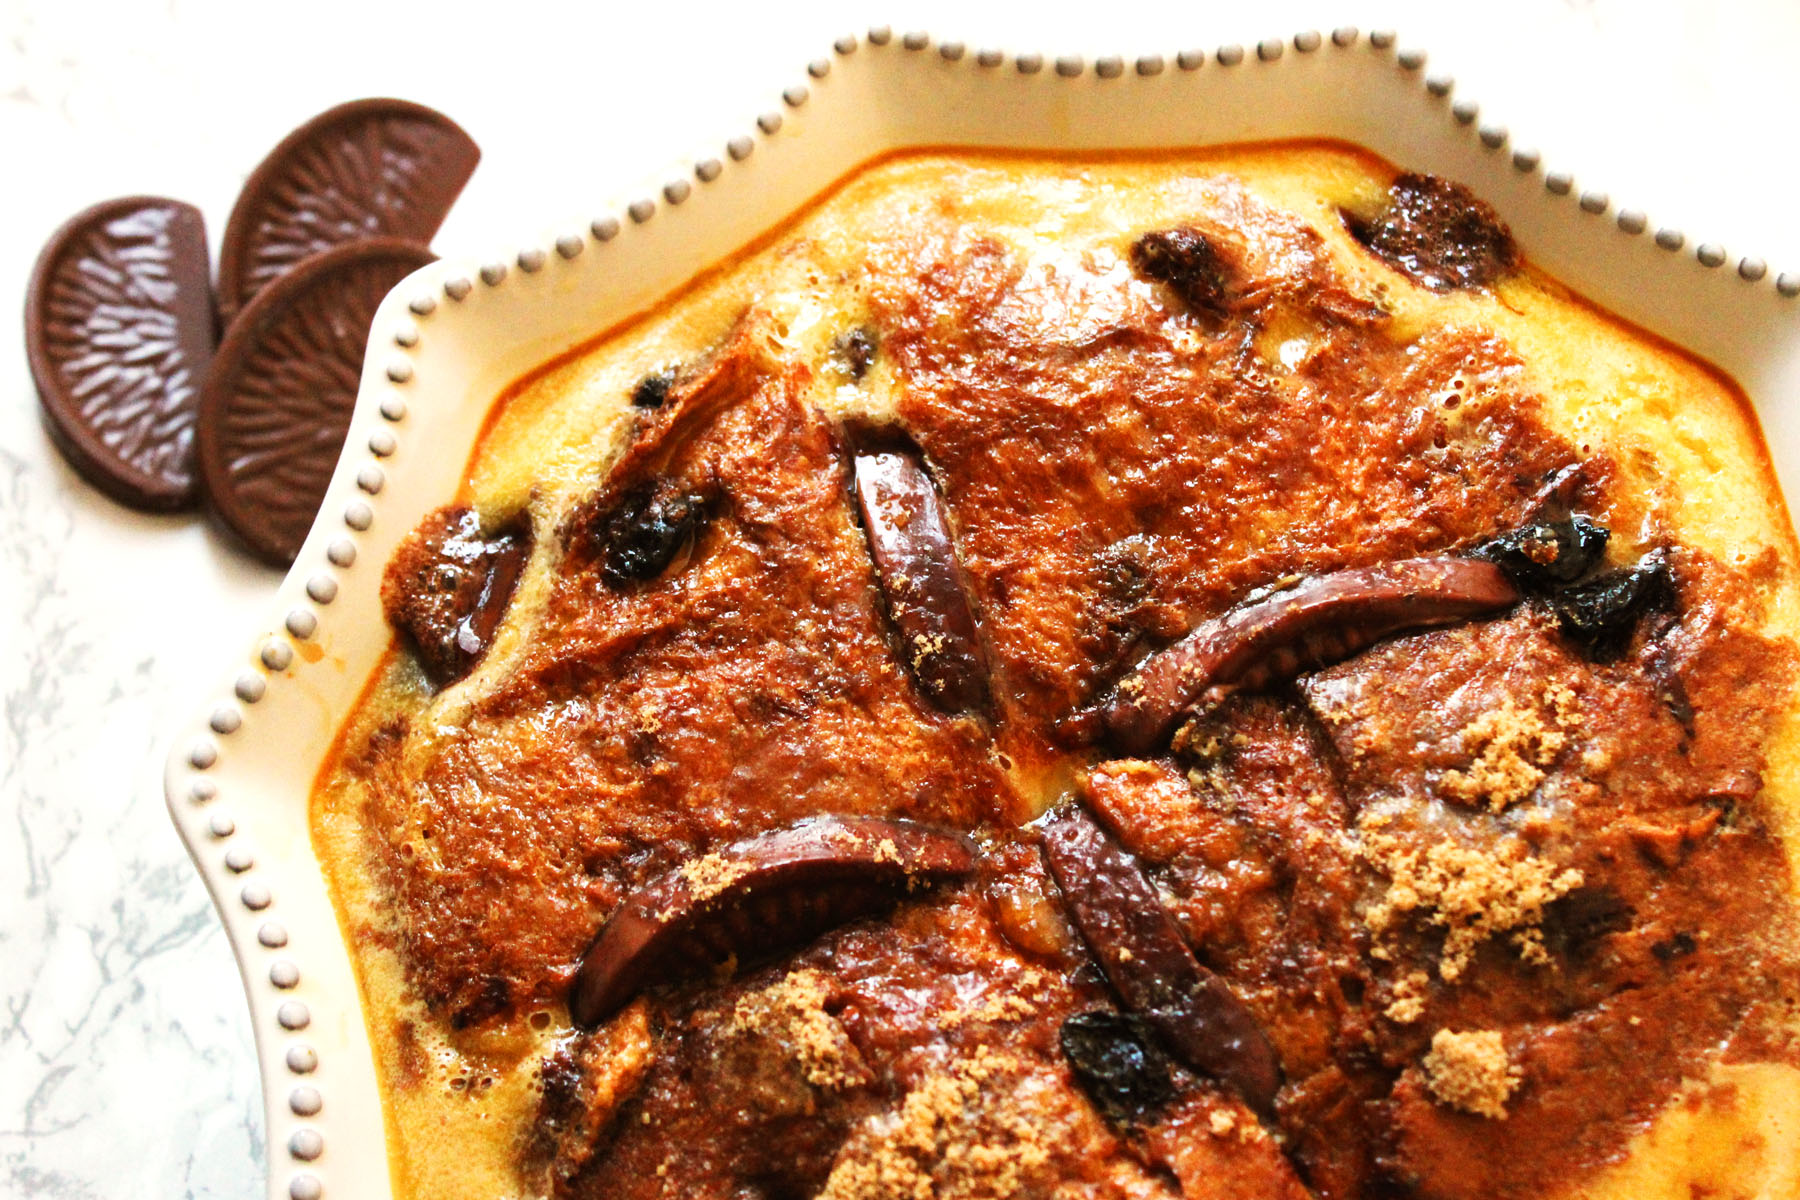 Terry's Chocolate Orange Bread and Butter Pudding